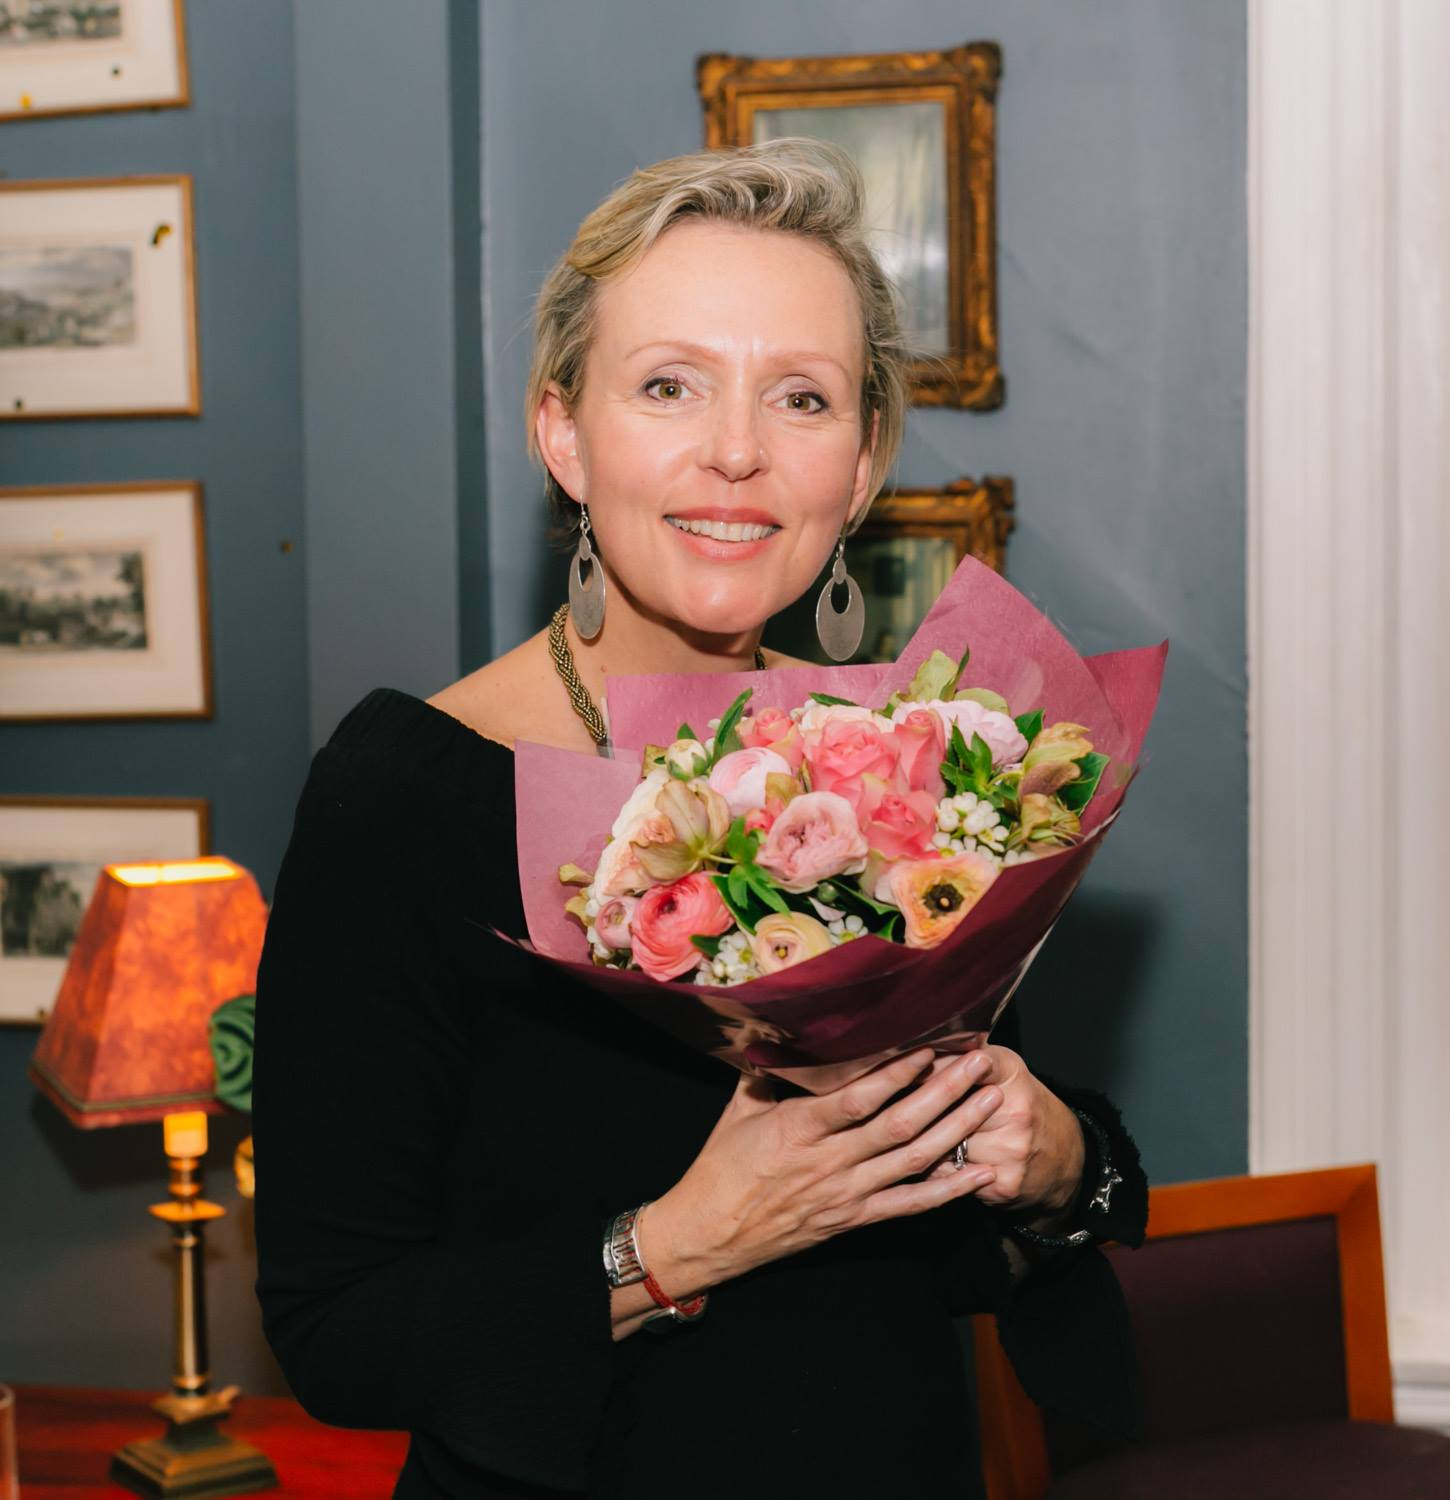 Thank you Louise Trevitt for sharing your personal story and remarkable body of creative work. Bravo! Lovely flowers from Tulipanna Florist